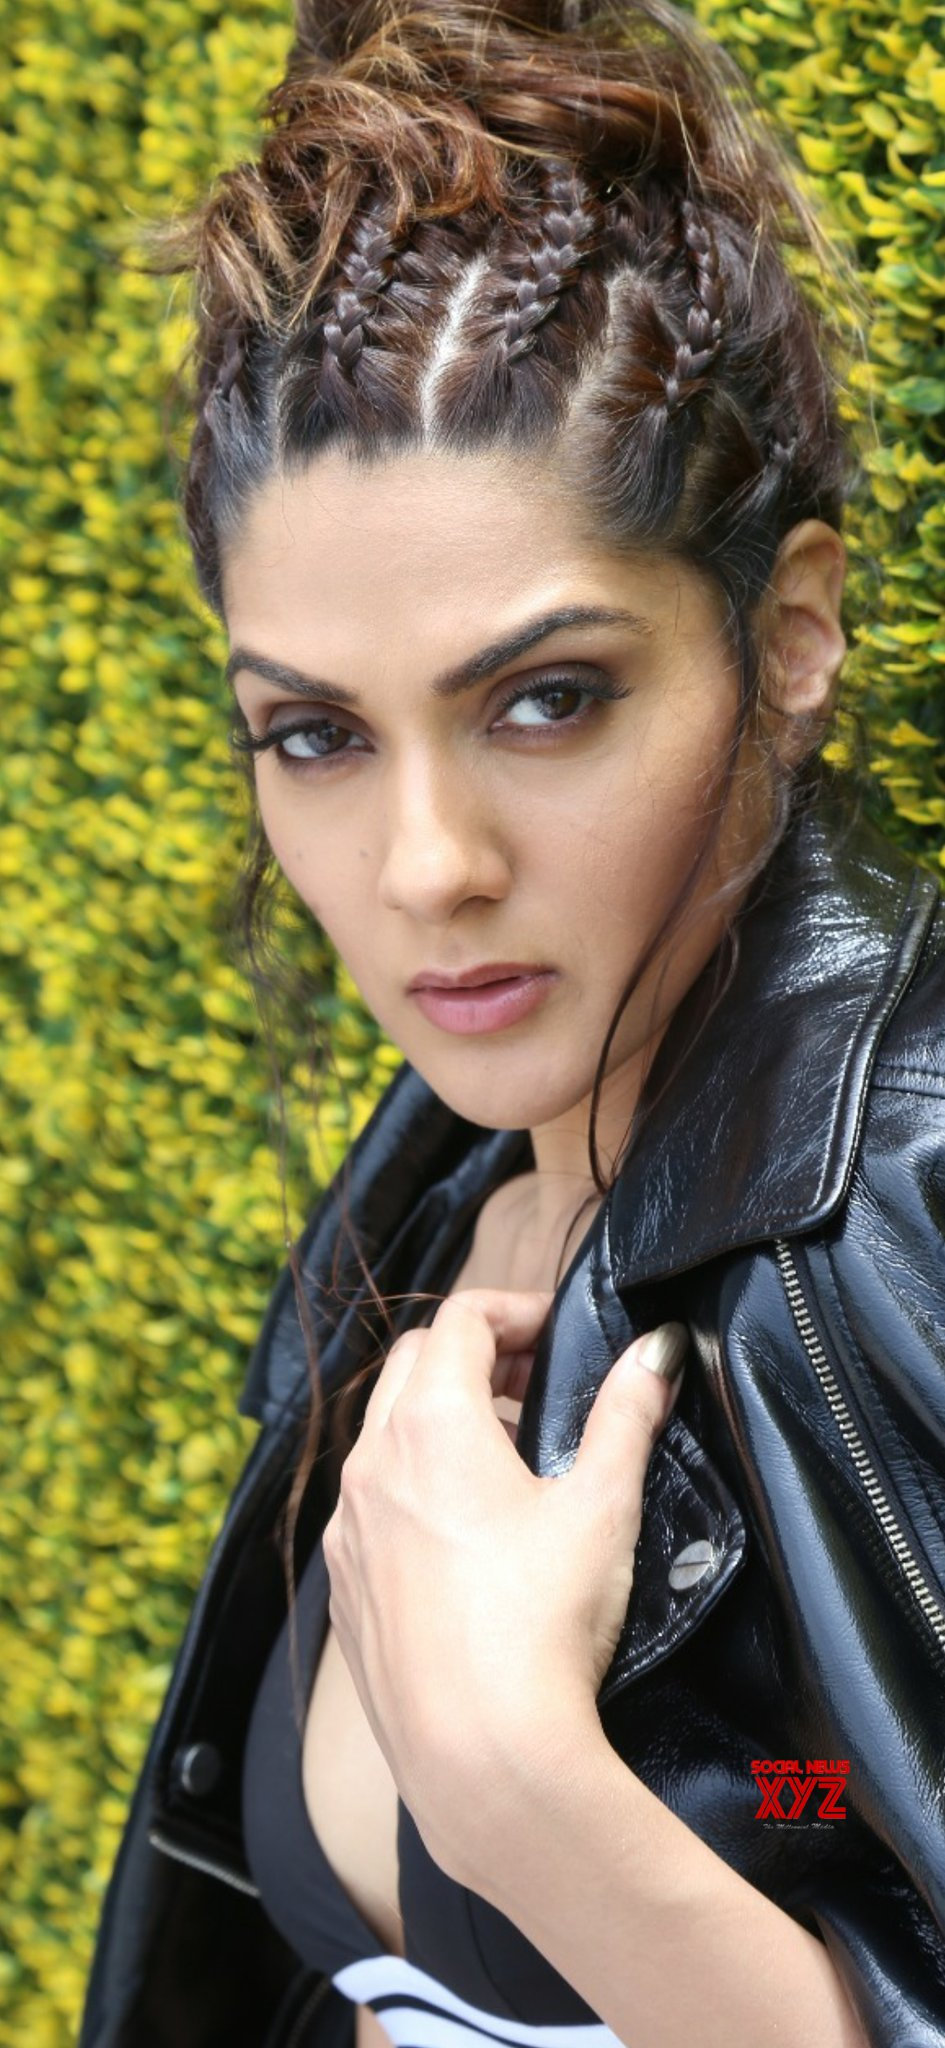 Actress Sakshi Chaudhary New Hot And Sexy Stills